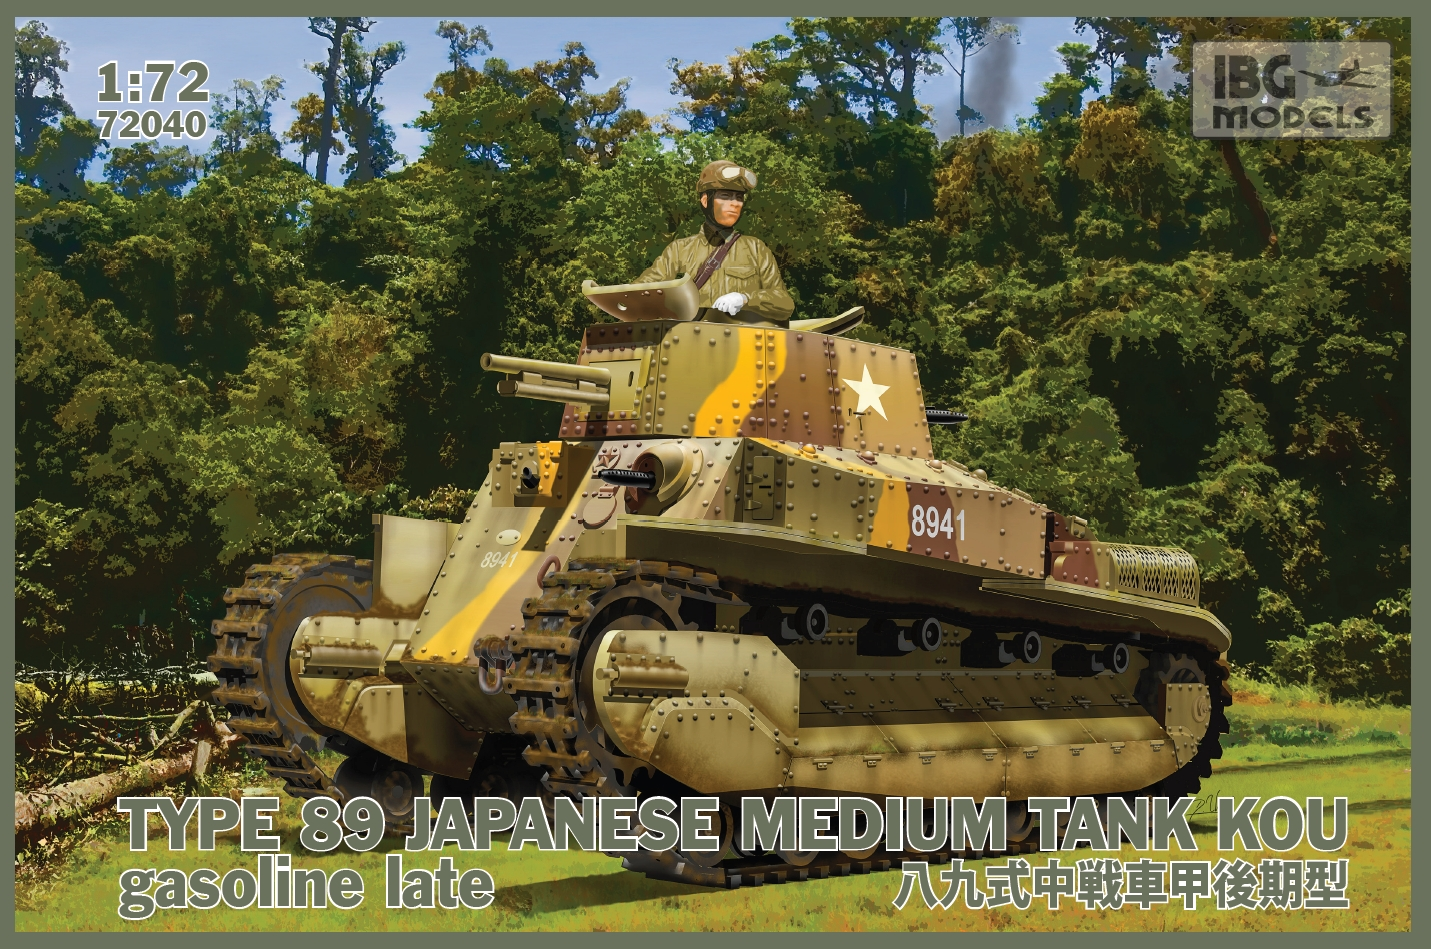 TYPE 89 Japanese Medium tank KOU - gasoline Late